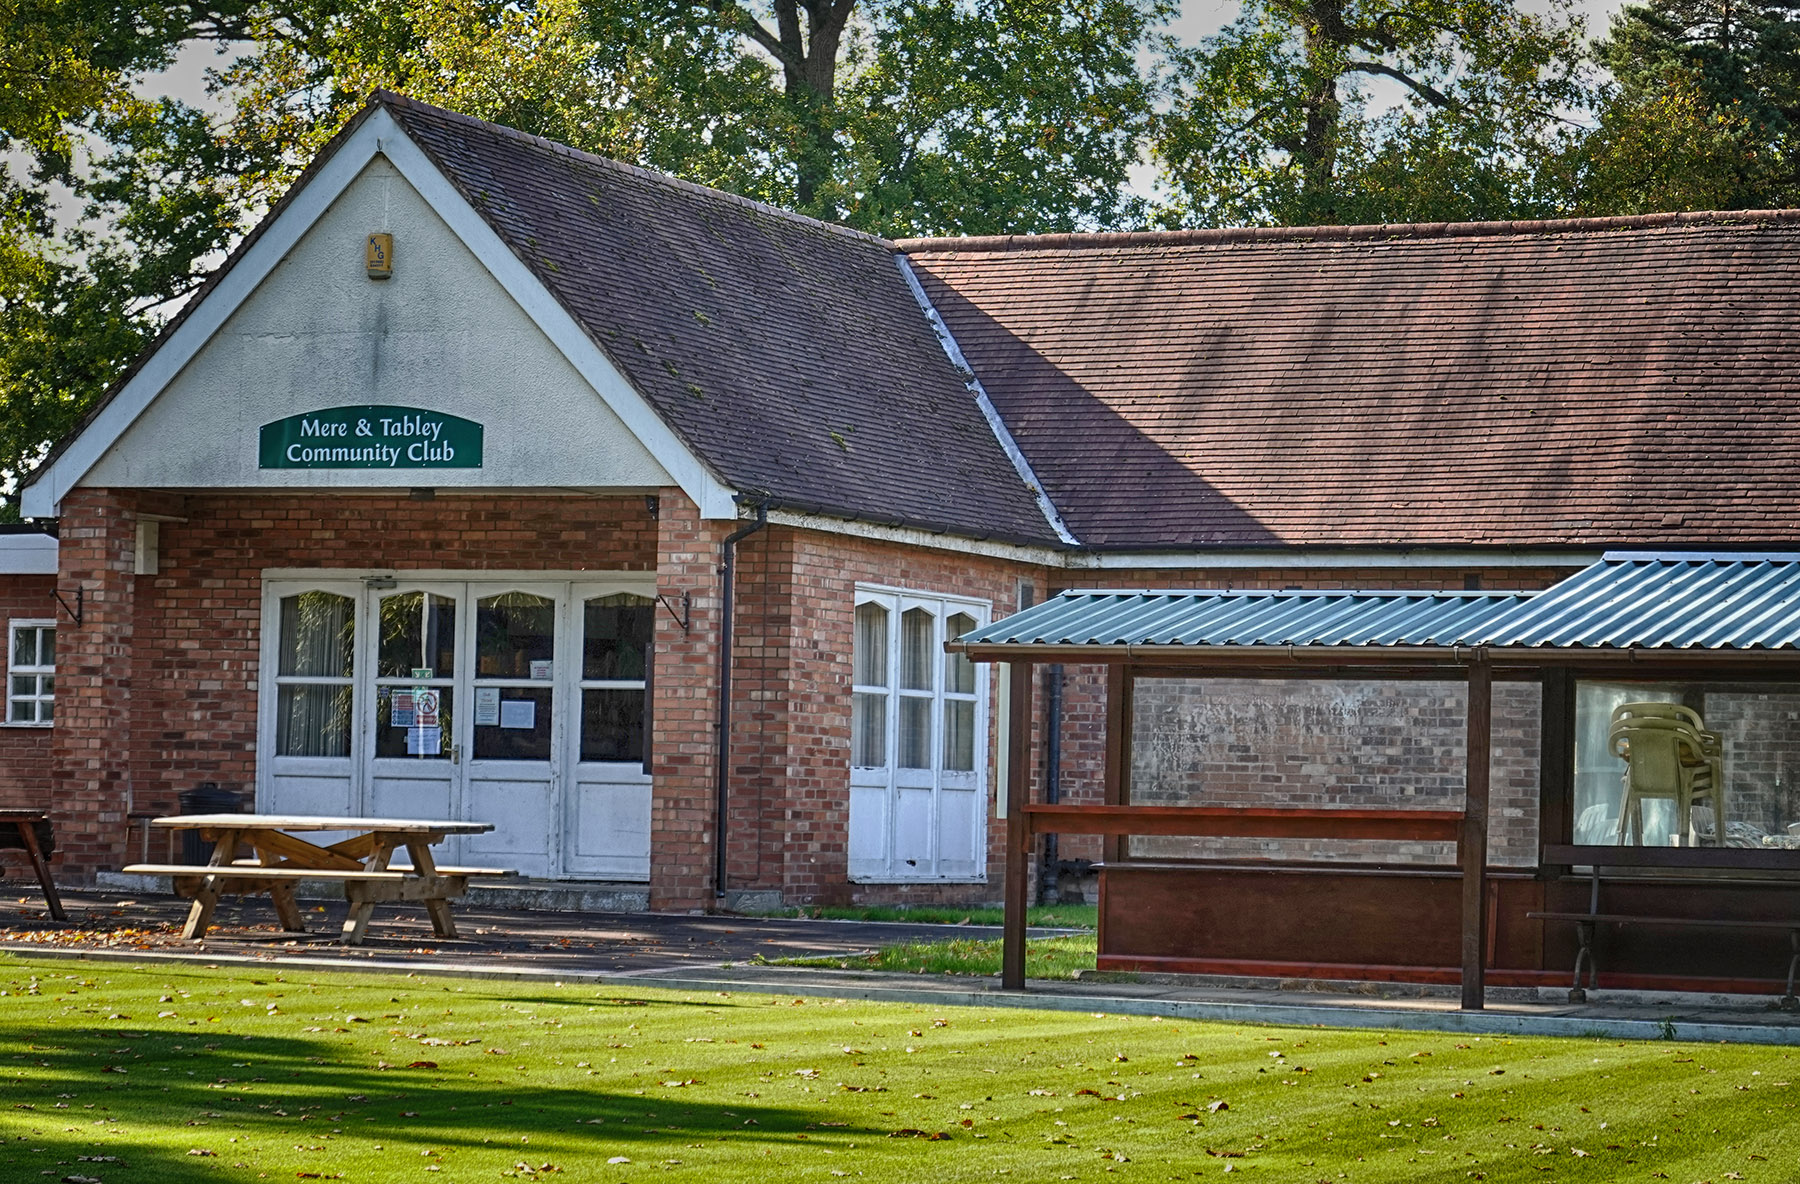 Mere & Tabley Community Club